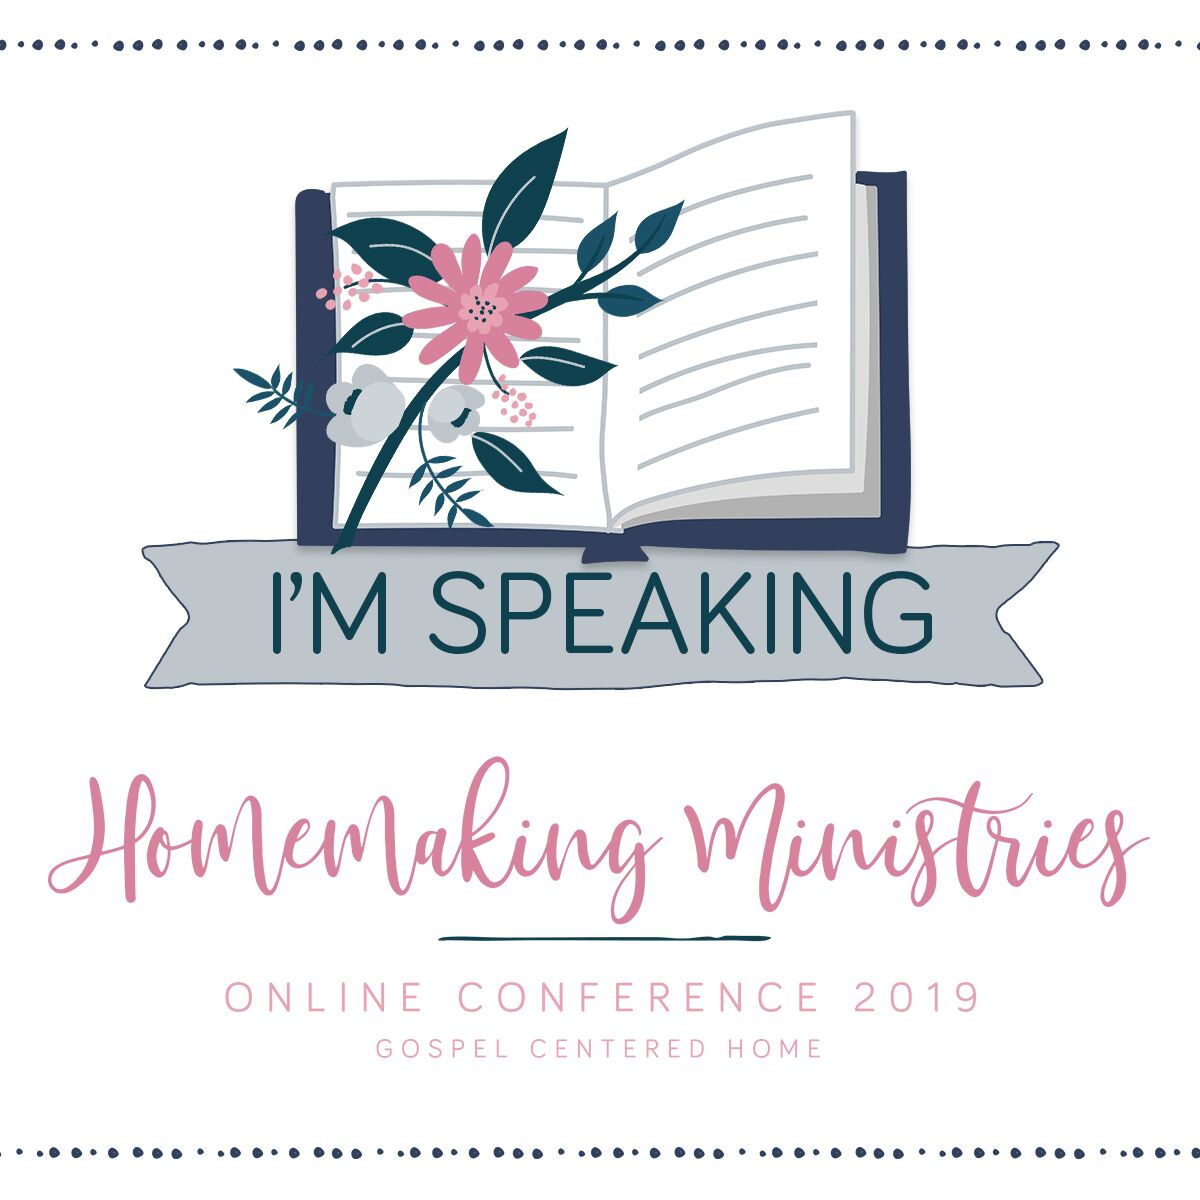 Reserve your seat for Homemaking Ministries Conference